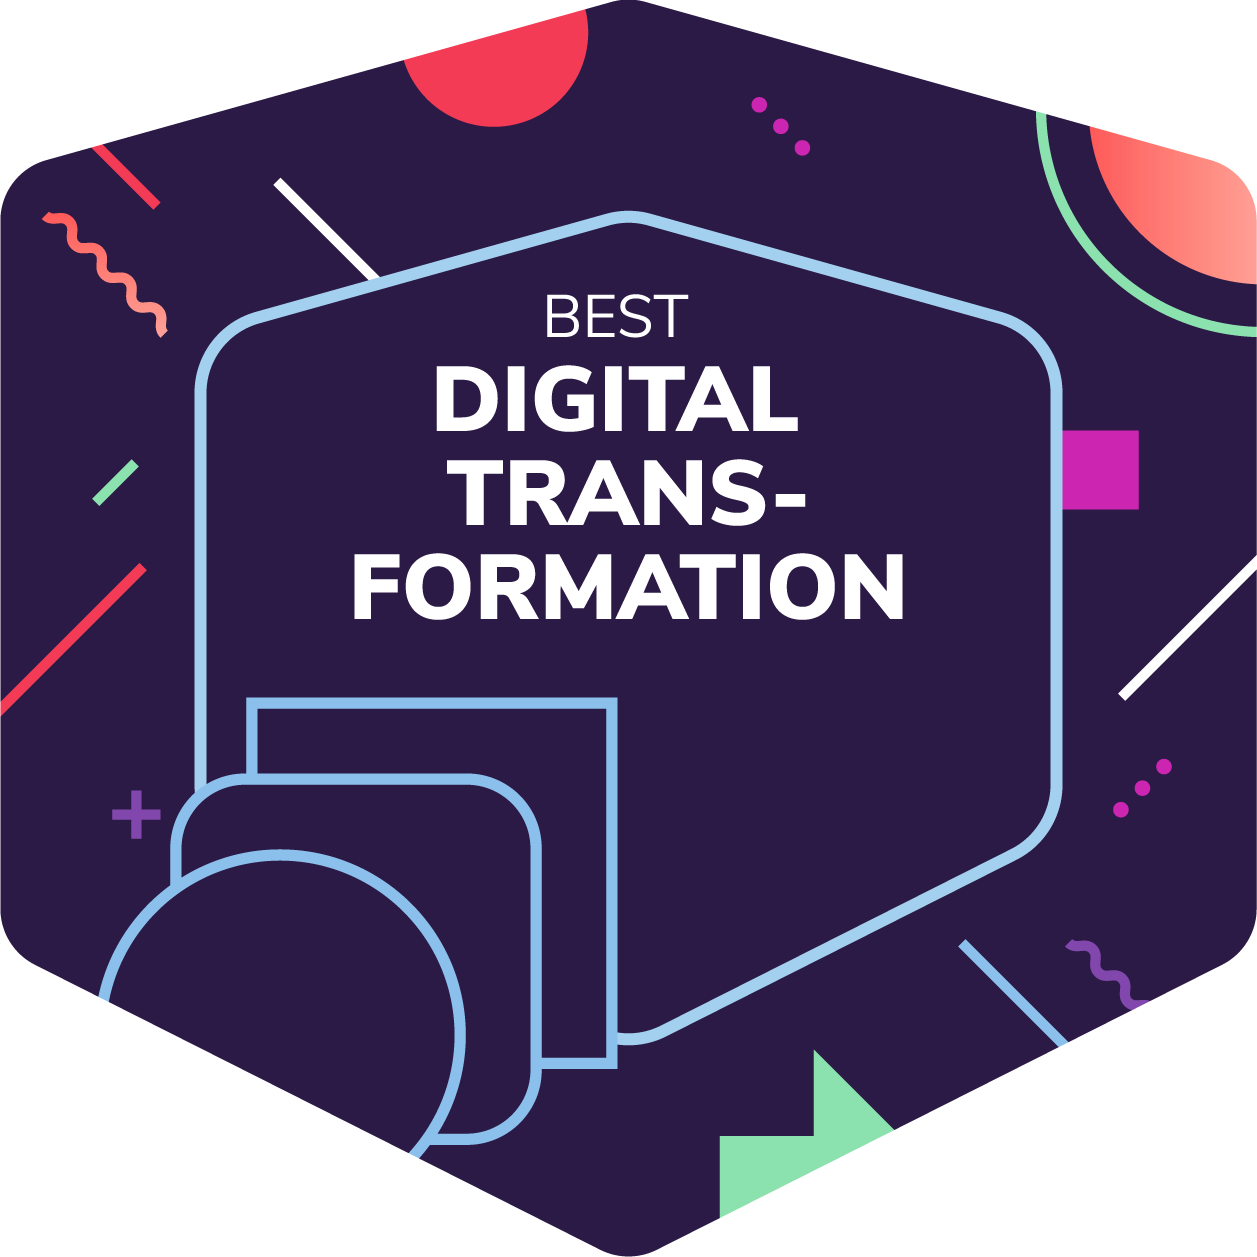 Best Digital Transformation